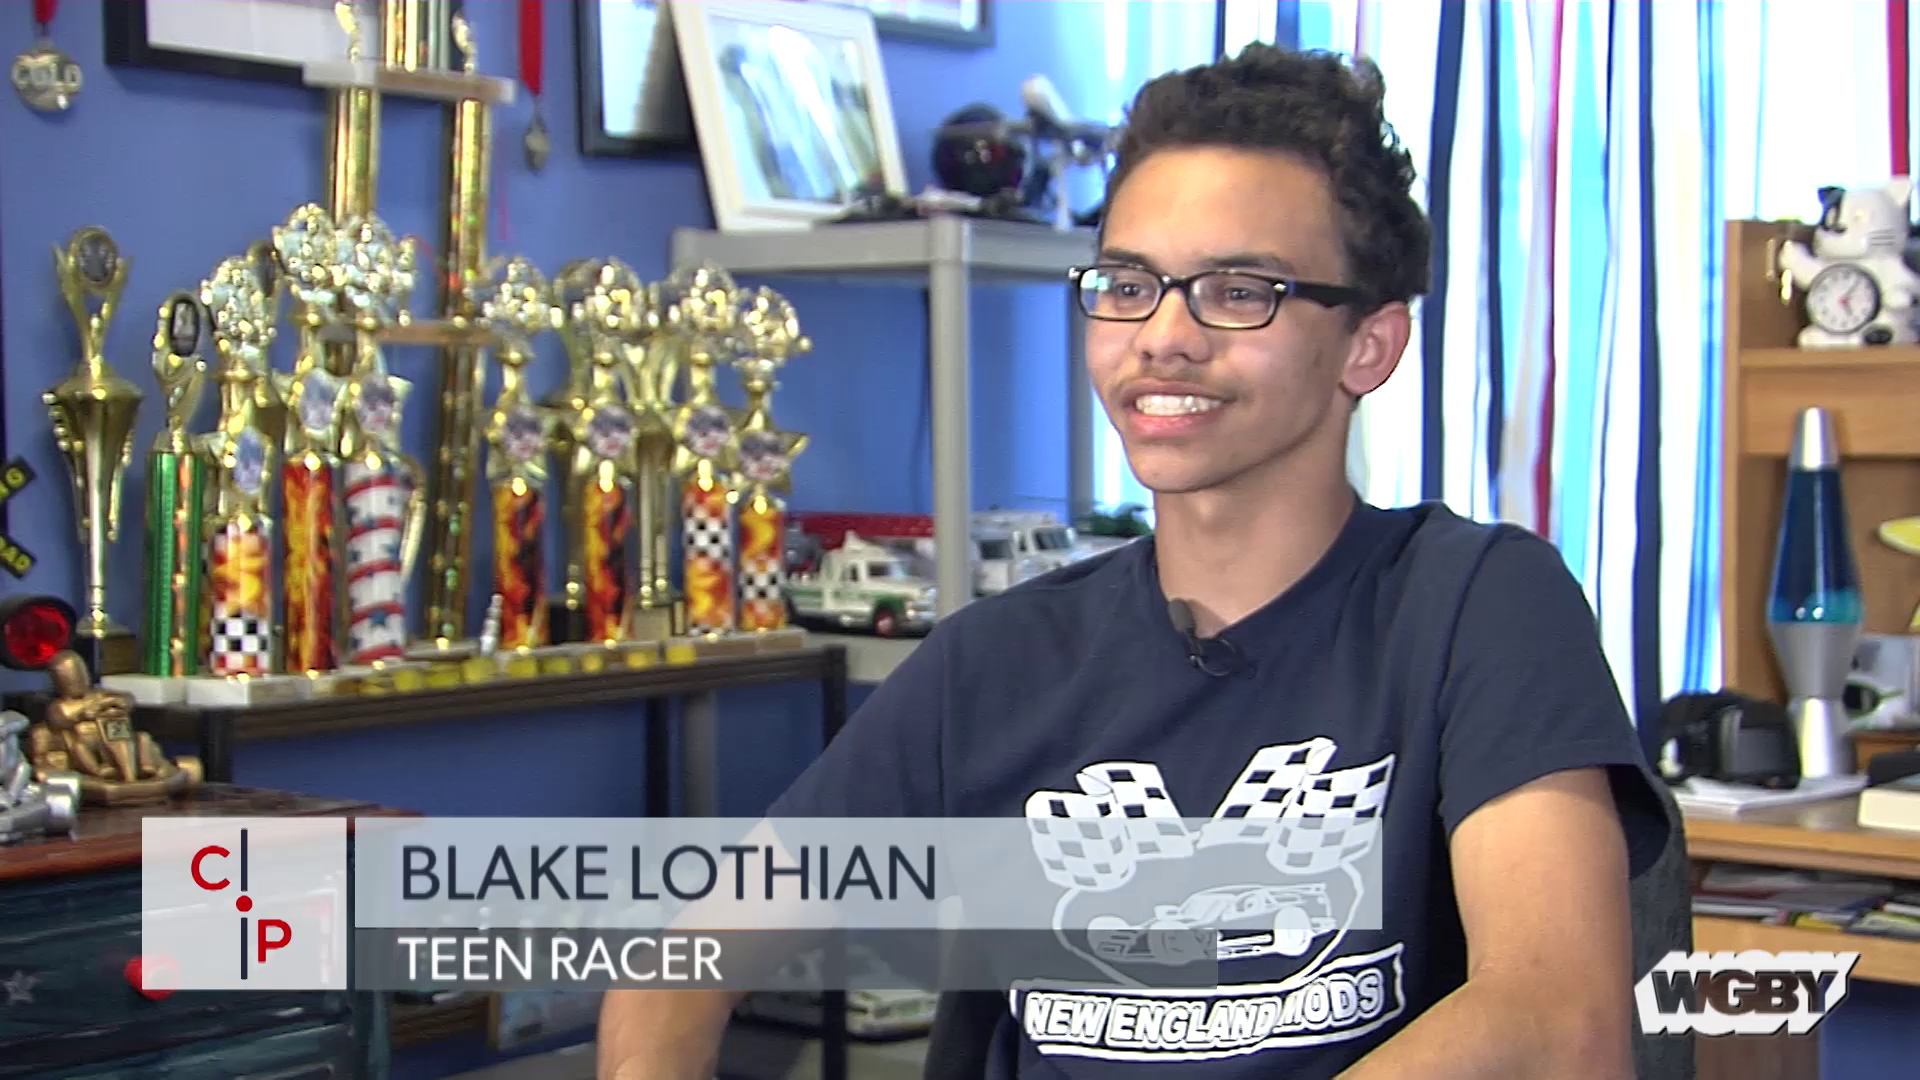 A sprinter for the Wellesley High track team, freshman Blake Lothian is dreaming of going pro, but on a very different track. As Connecting Point's Stephanie Leydon shows us, the runner is also a race car driver, and he is burning rubber with the adults—and keeping one eye on NASCAR.